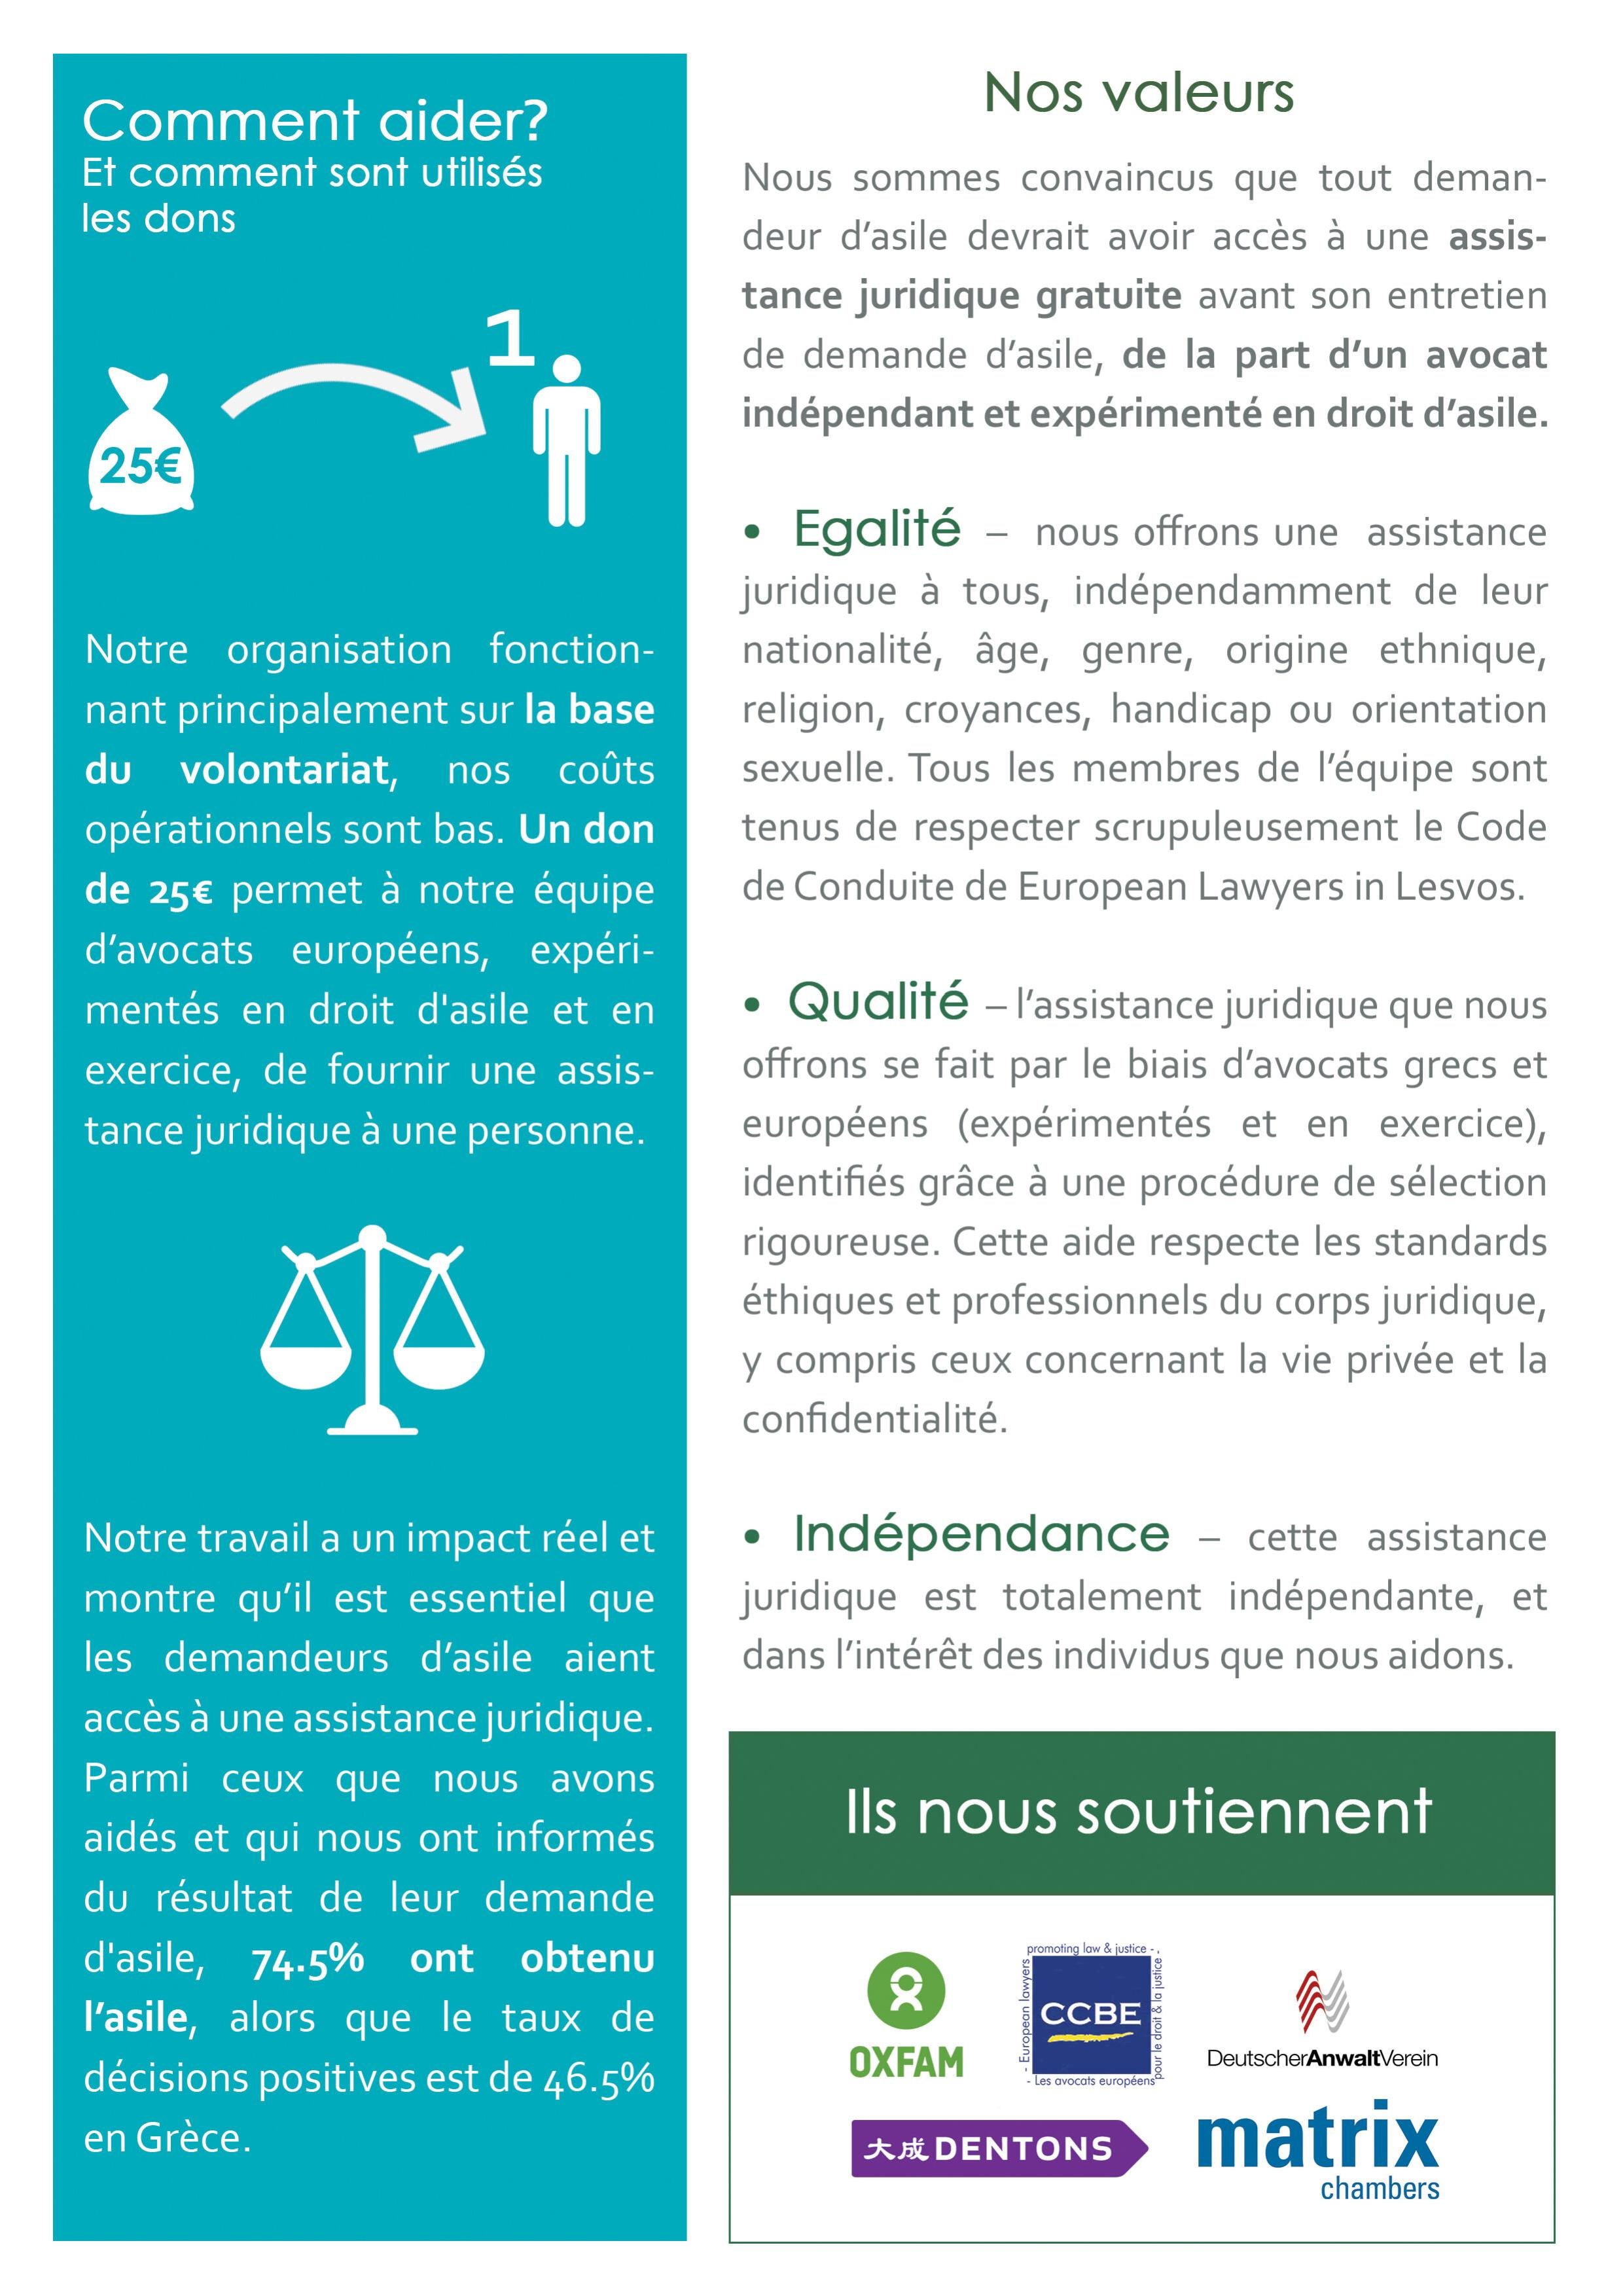 European Lawyers in Lesvos - Infographic_FR-page-003.jpg